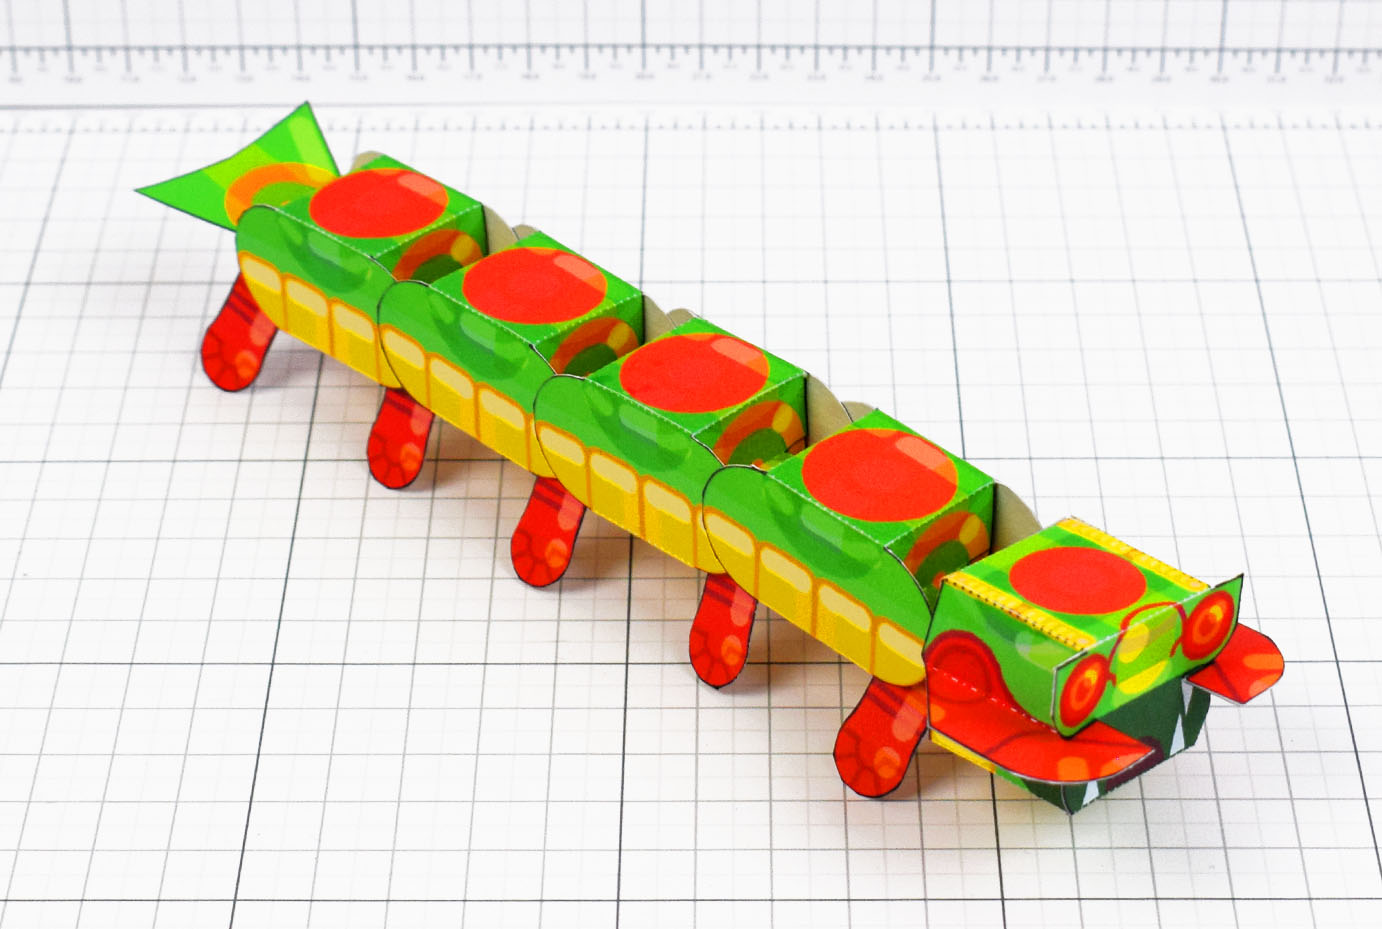 PTI - Centipede Game Paper Toy Craft Monster Bug Image - Main